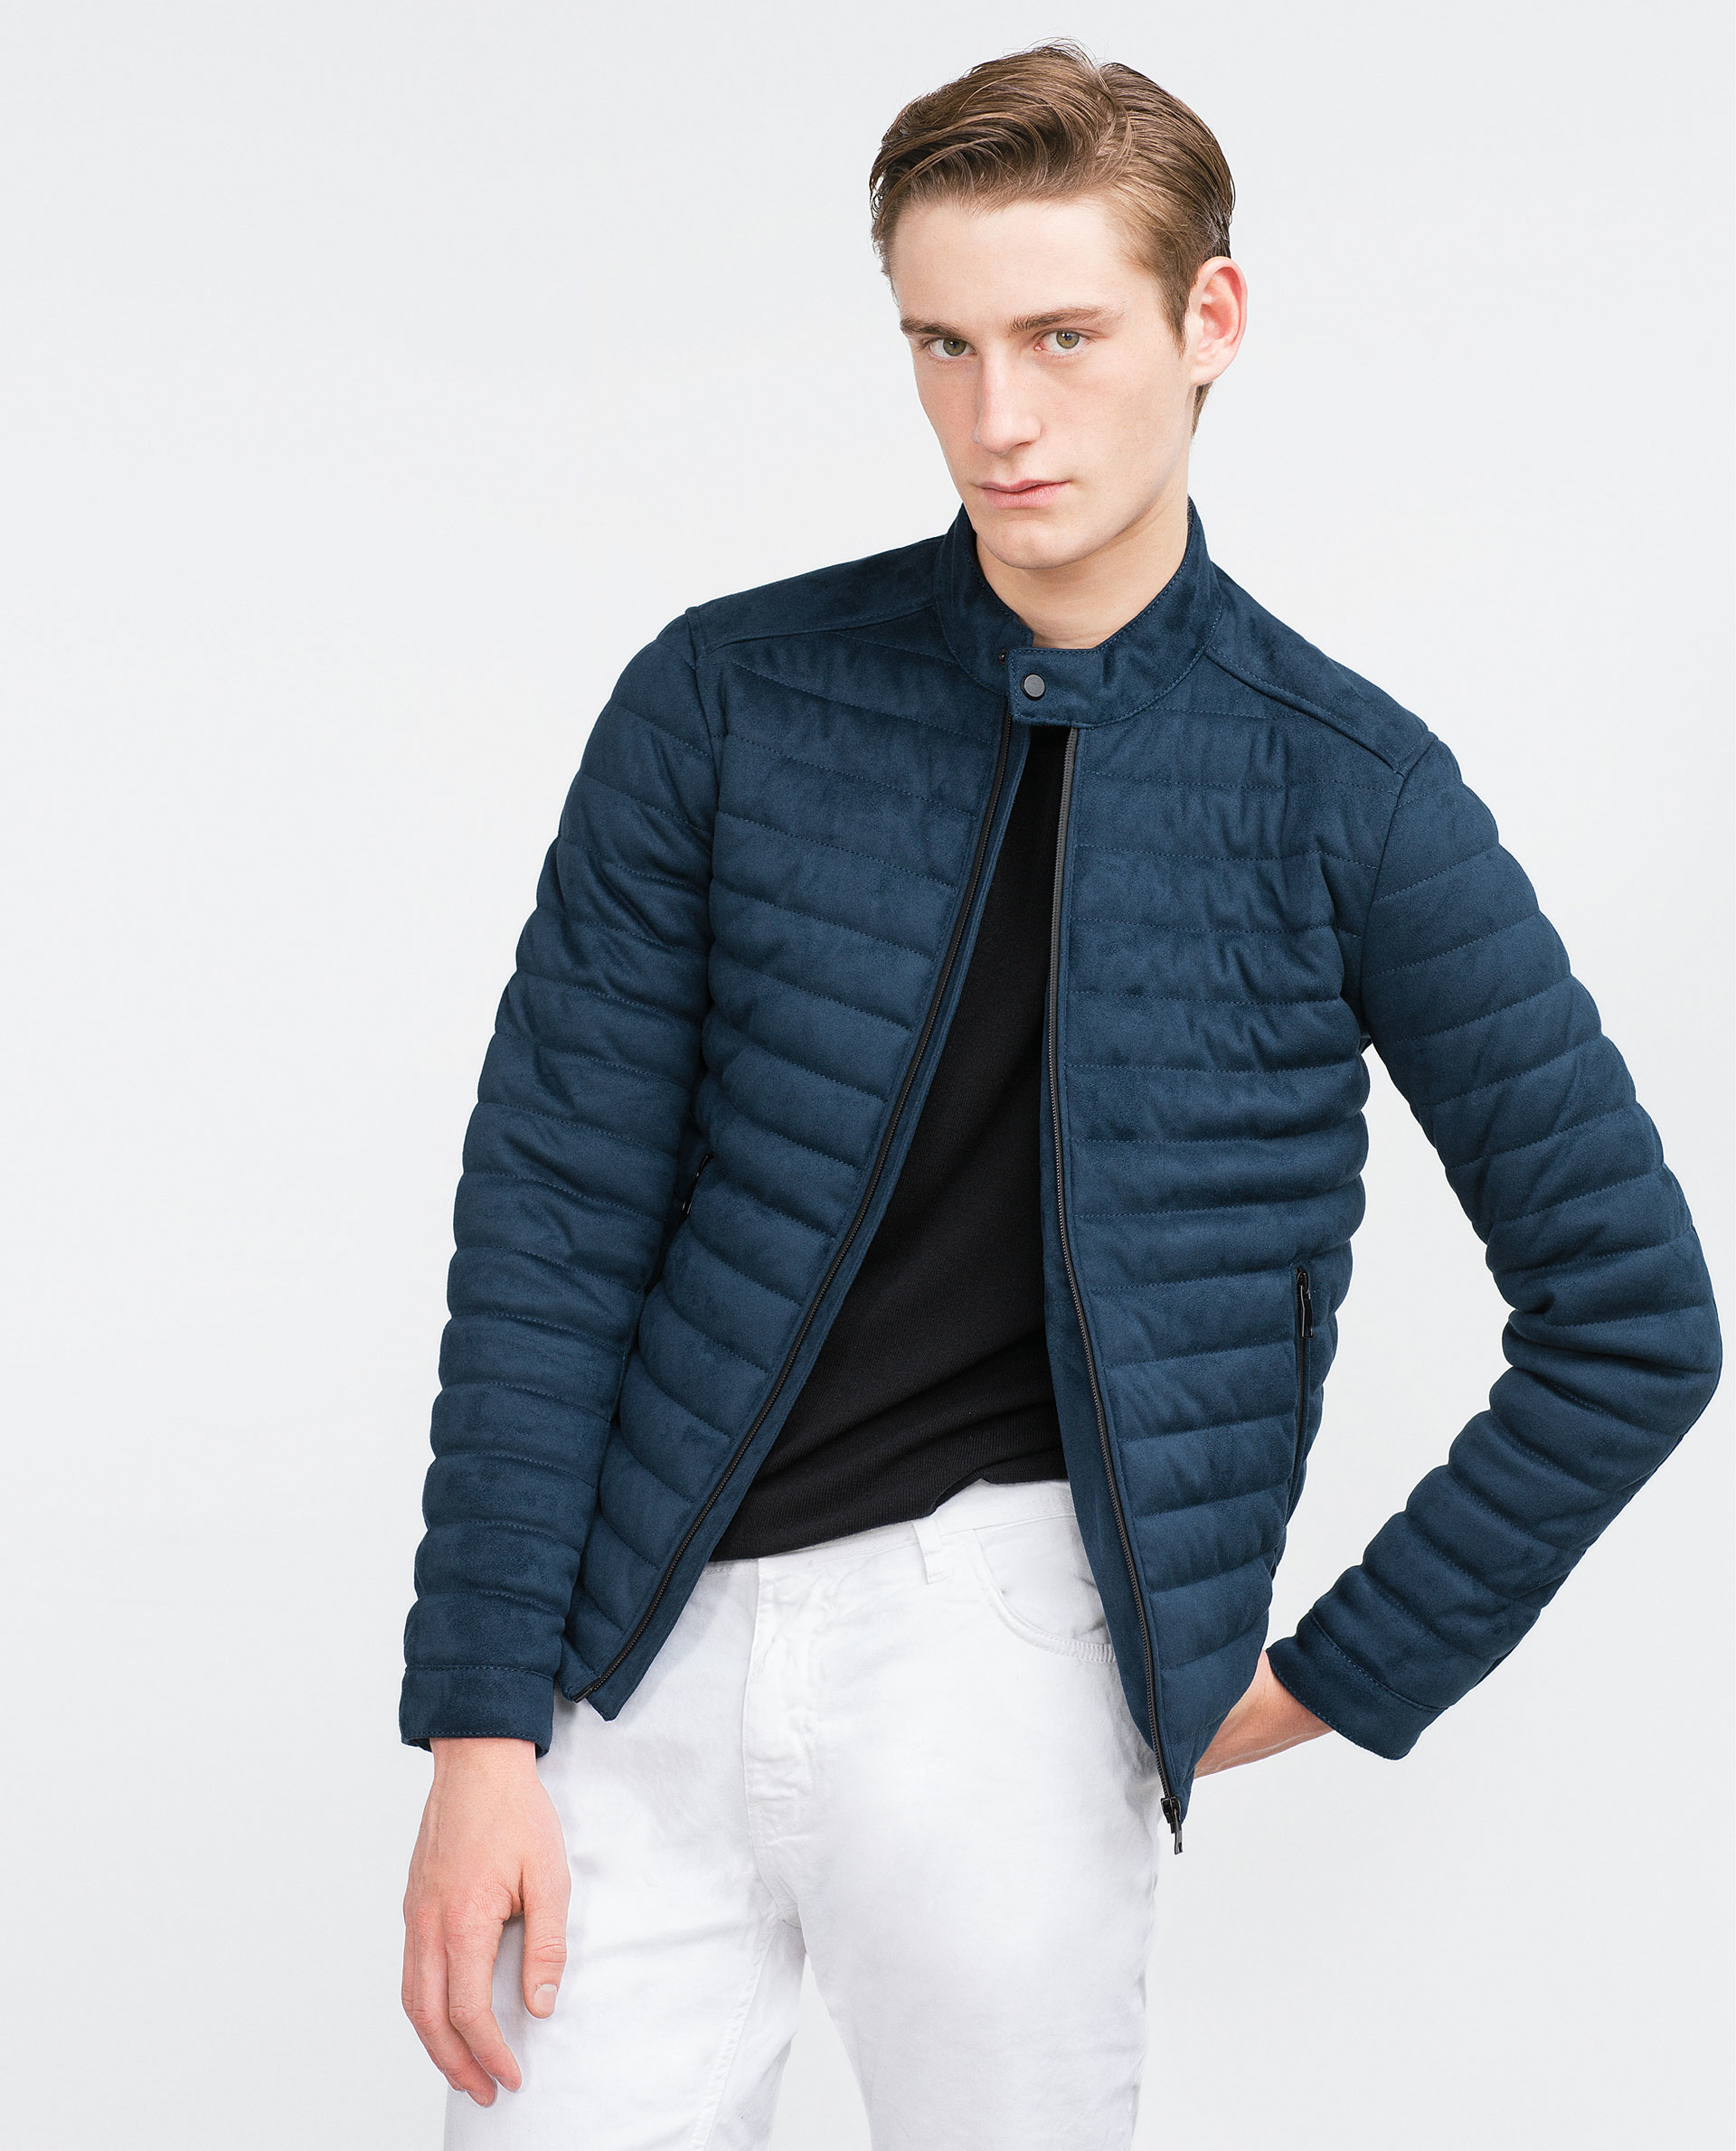 pin wardrobe for mens quilted men jacket quilt fall essentials